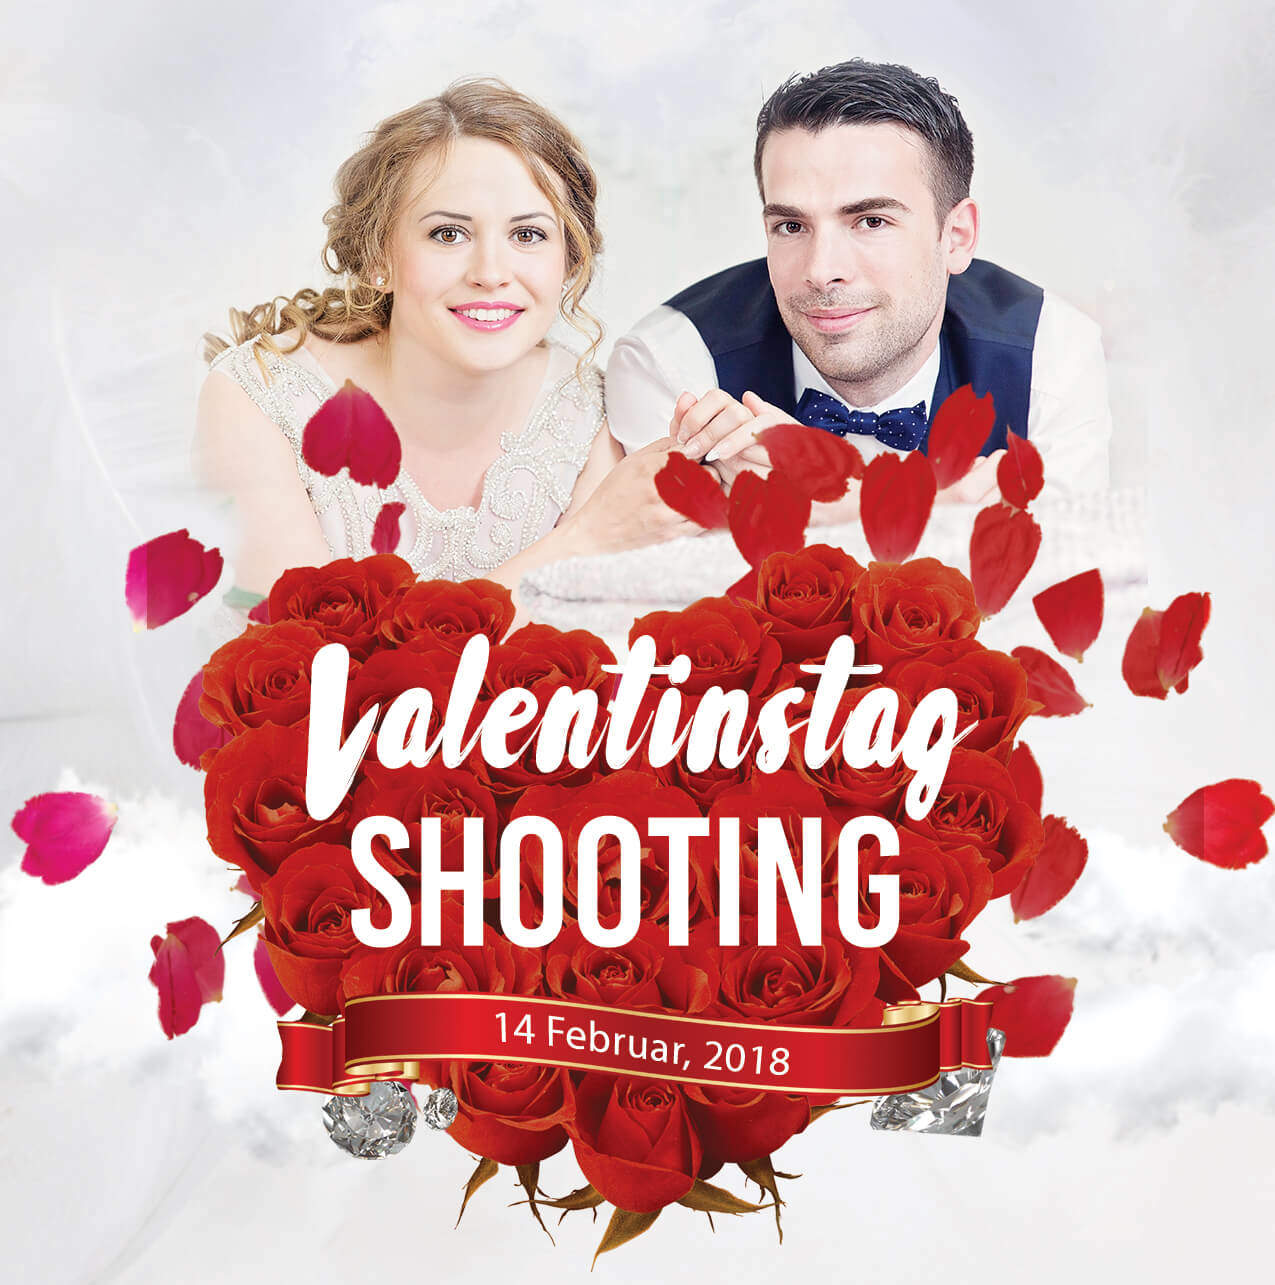 Valentinstag Shooting